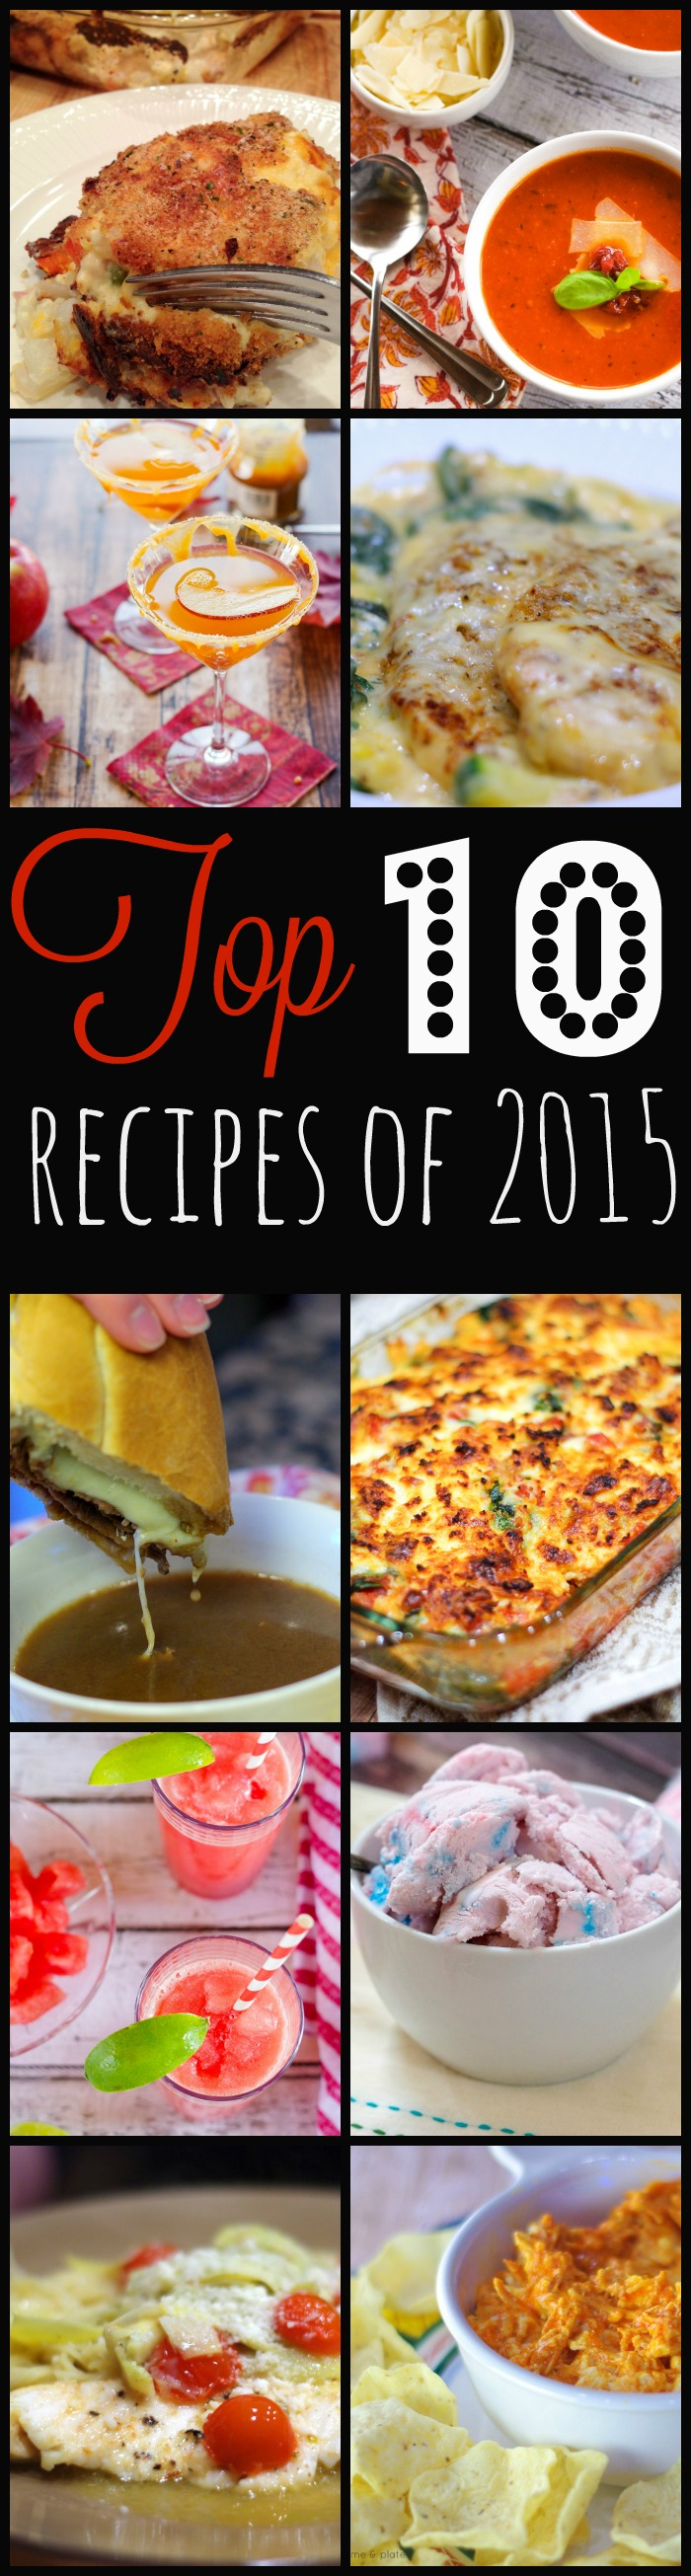 Top 10 Recipes of 2015 | www.homeandplate.com | From comfort food to drinks and desserts, these 10 recipes were the most talked about, downloaded, liked, pinned and printed than any other in 2015.